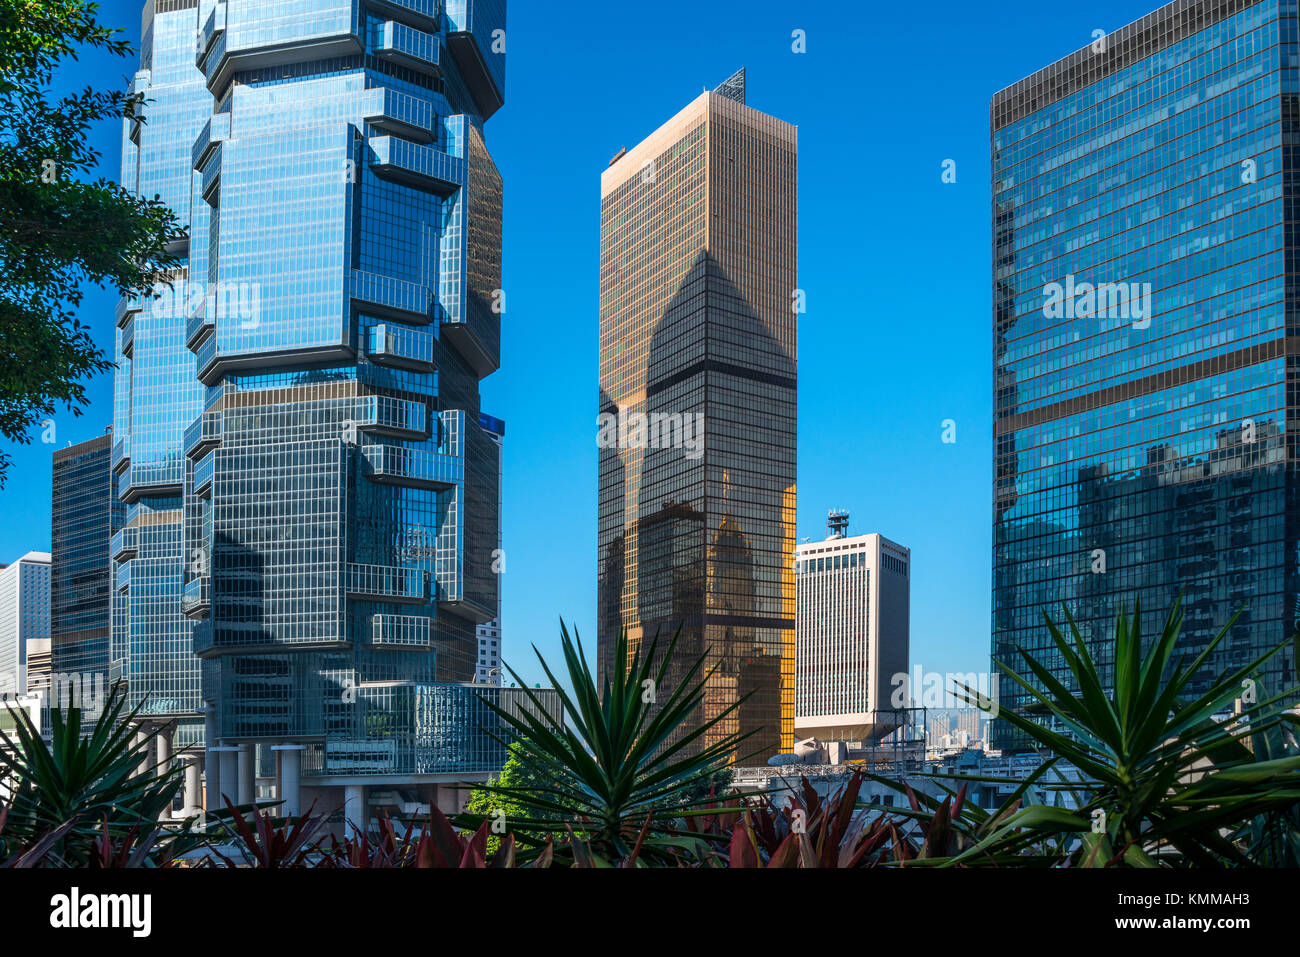 The Lippo Building, Far East Finance Centre and Admiralty Tower, Hong Kong - Stock Image